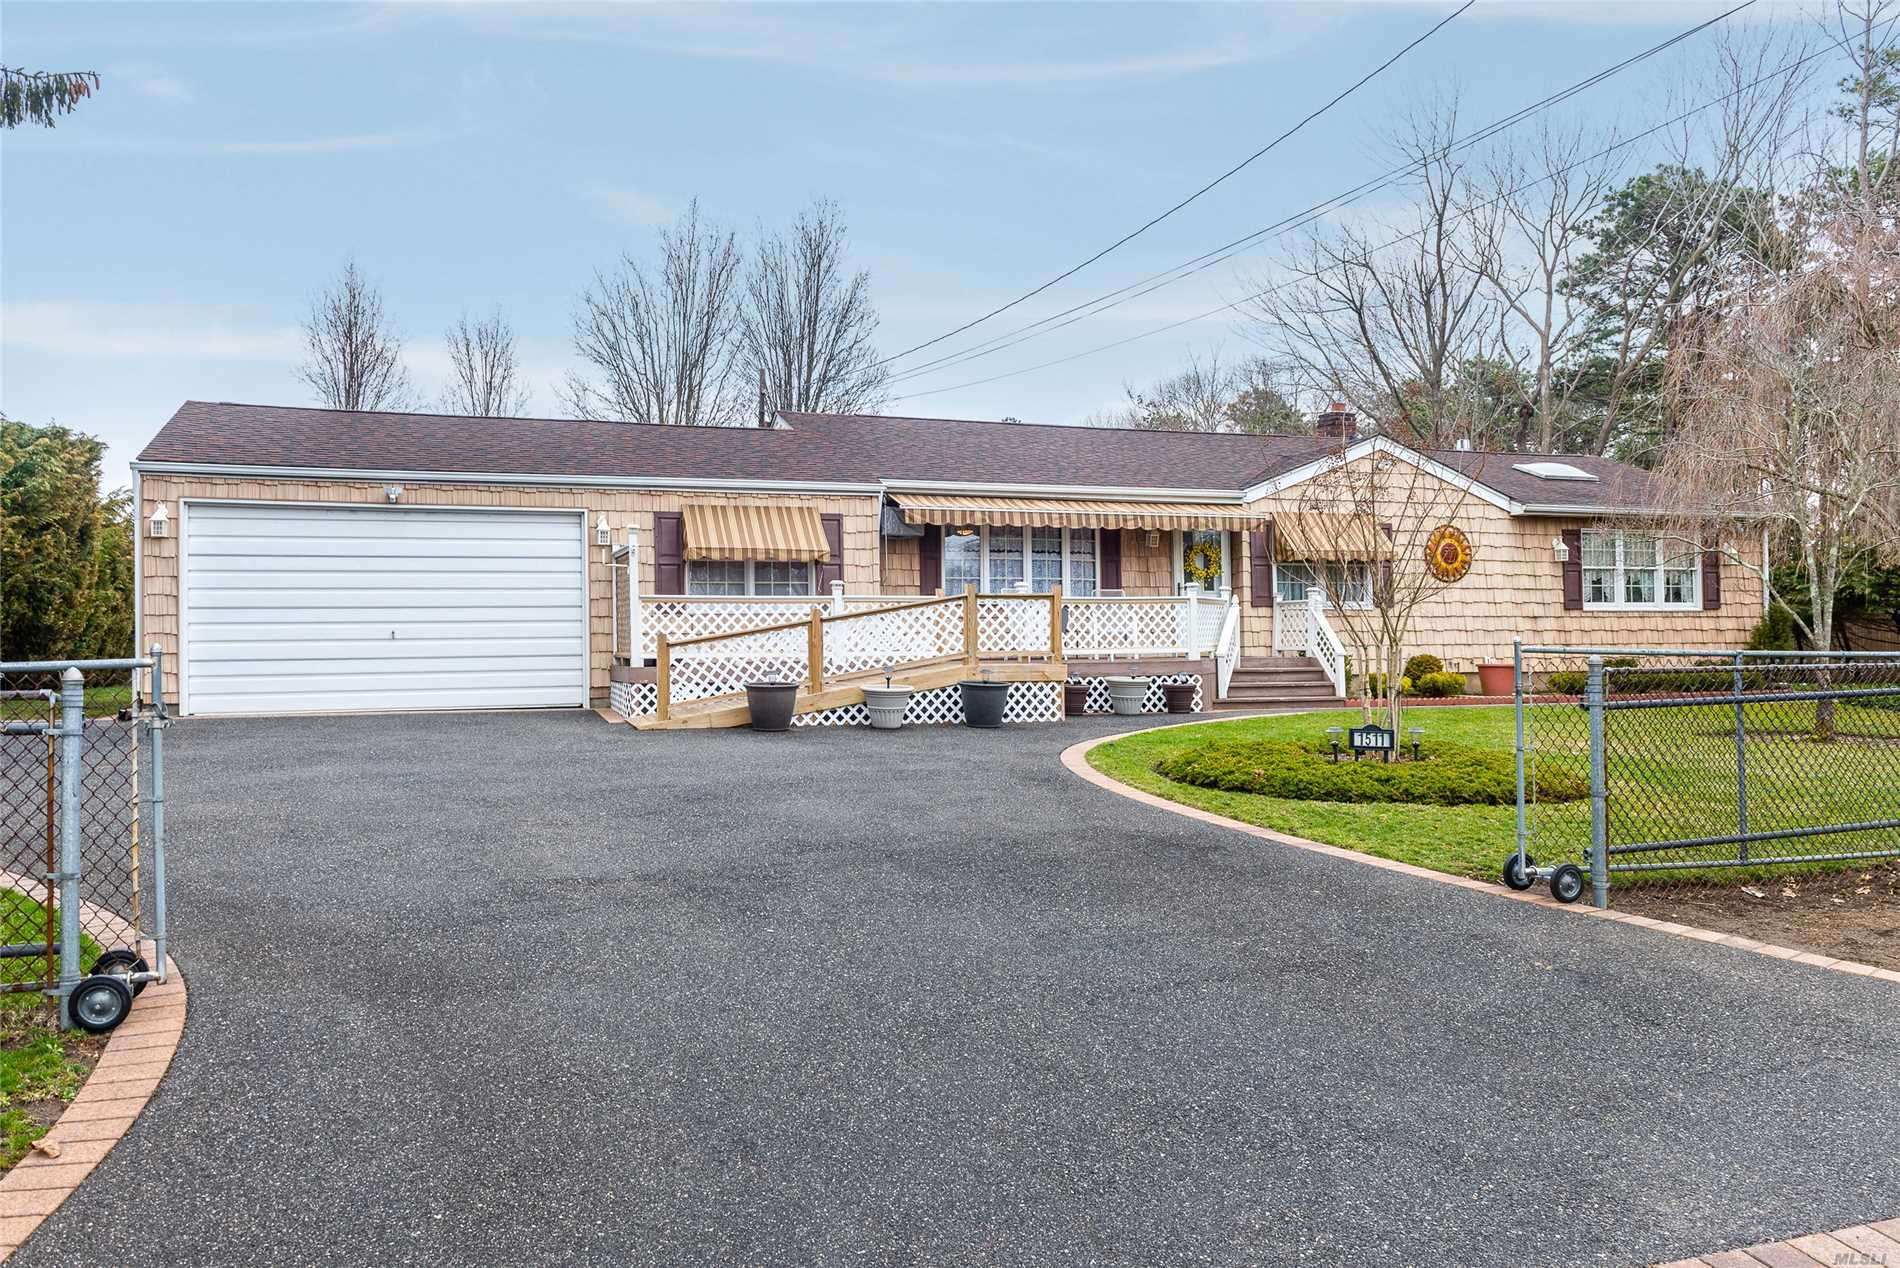 Lovely 3 Bedroom 2 Bathroom Ranch In Bay Shore For $349, 990. Boasting A Beautiful Living Room With Fireplace, Master Bedroom W/ Private Bath, Granite Counters, Hardwood Floors, Attached Garage & Much More! Situated On A 1/4 Acre At The End Of A Quiet Street!